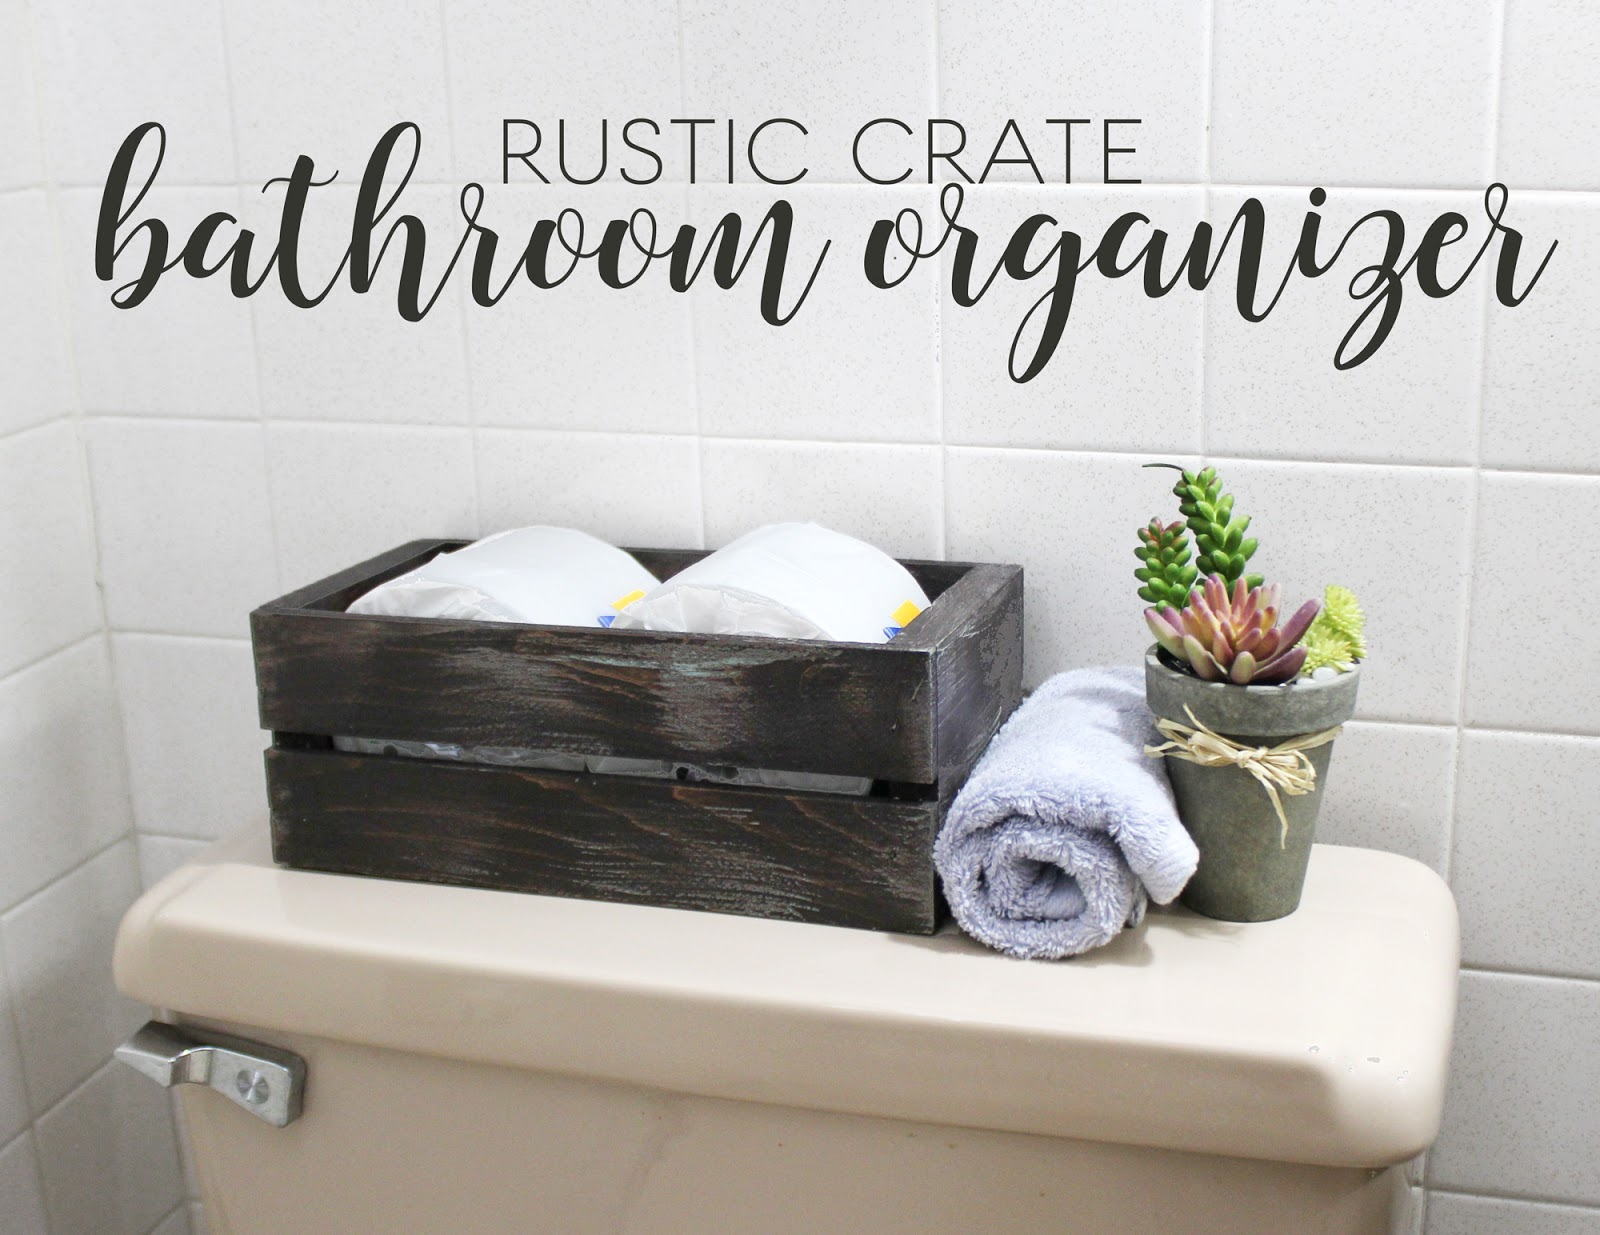 http://www.365designs.com/2016/07/diy-rustic-crate-bath-tissue-holder.html